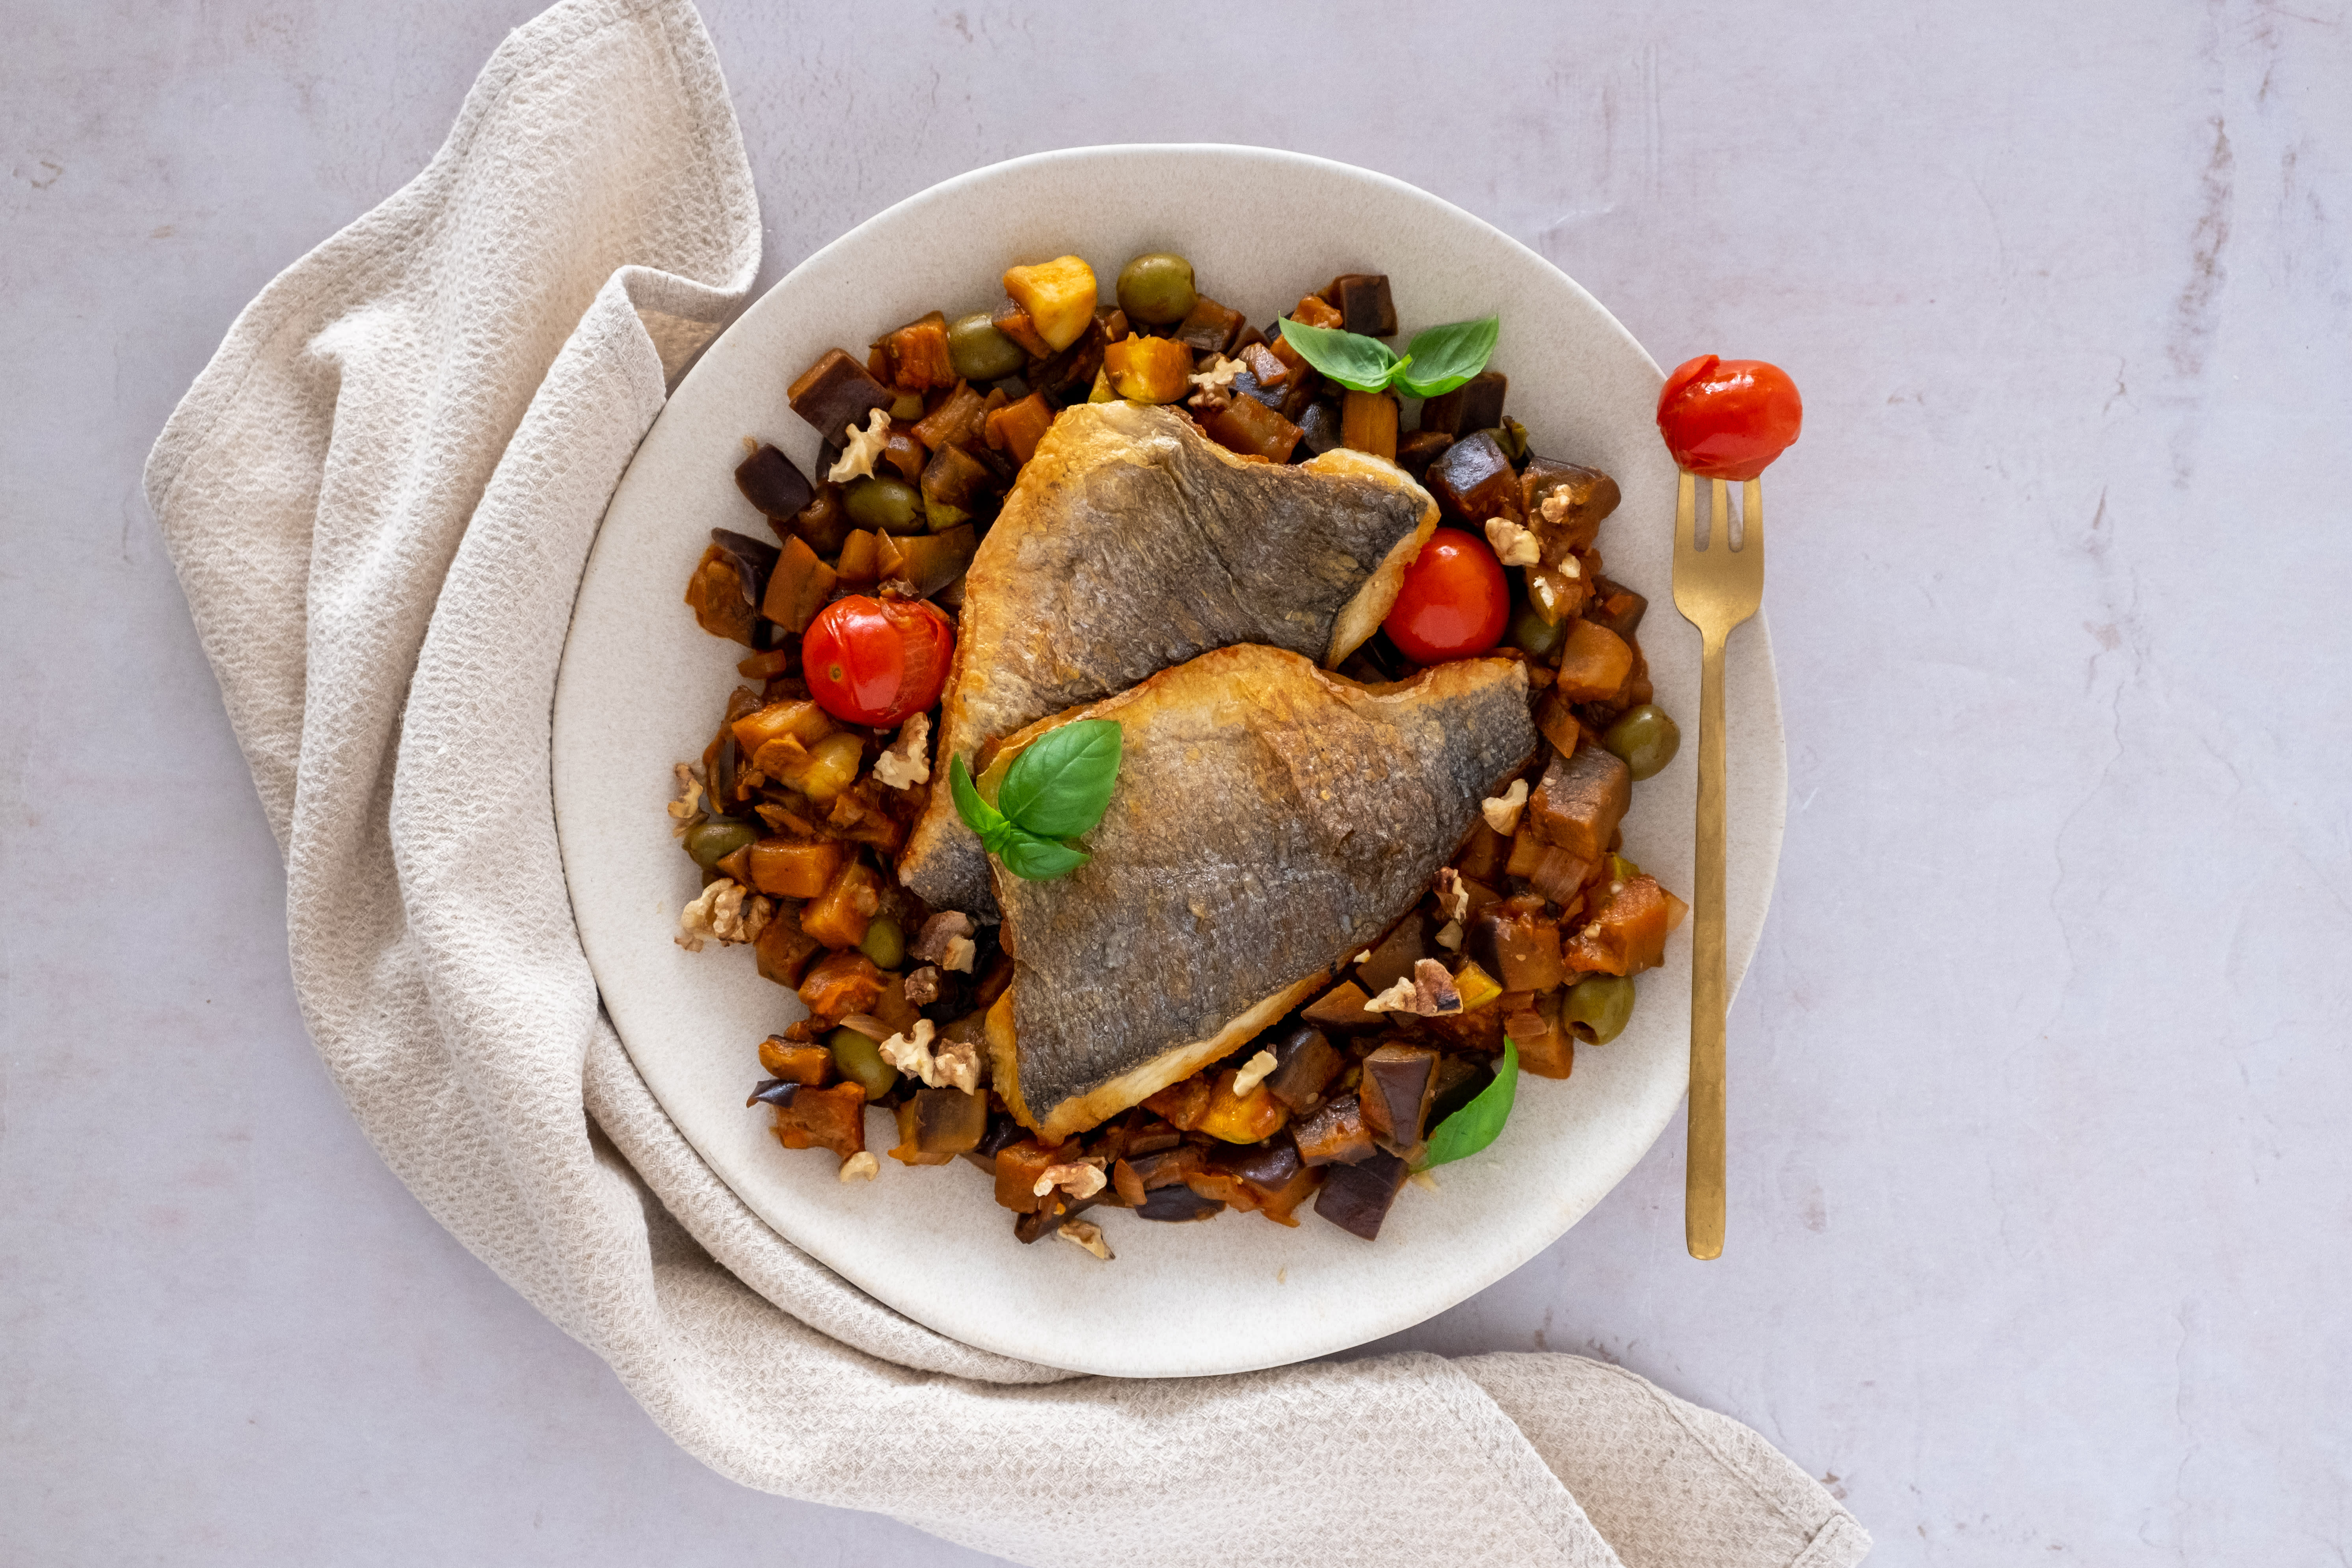 Crispy Seabass with Caponata Vegetables and Toasted Walnuts